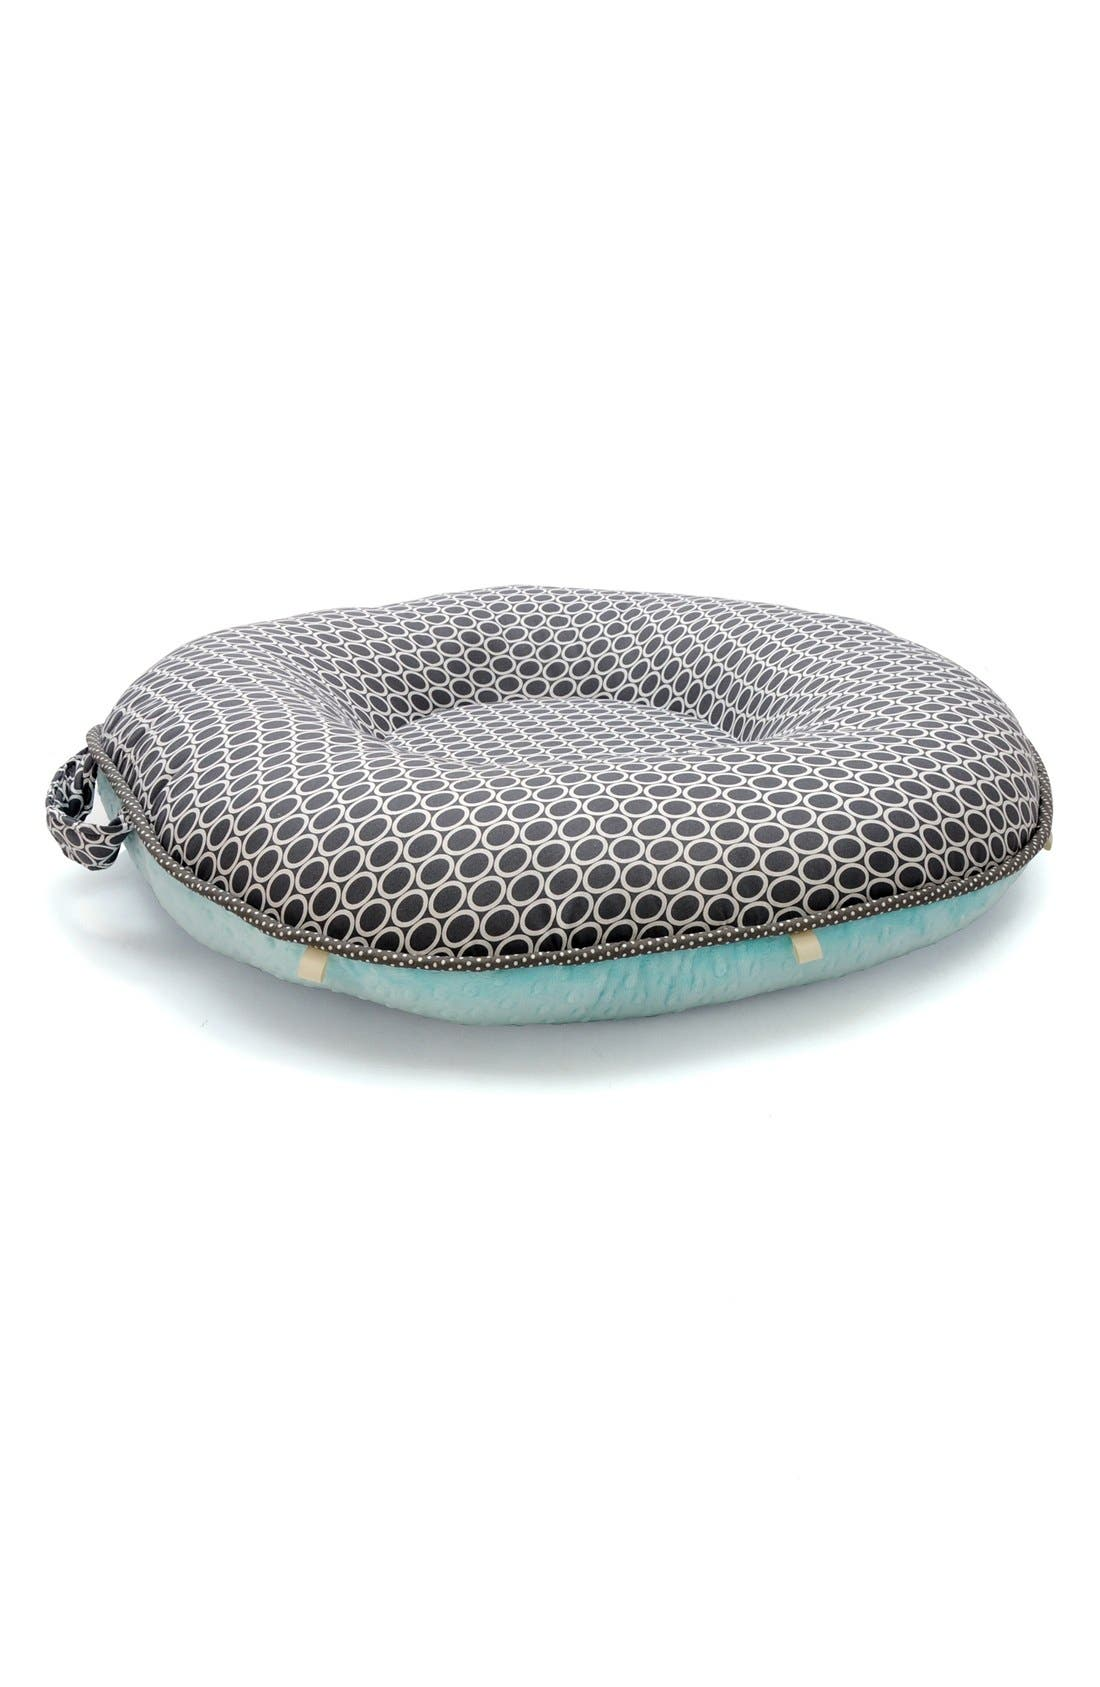 'Majestic' Portable Floor Pillow,                         Main,                         color, Grey/ Aqua